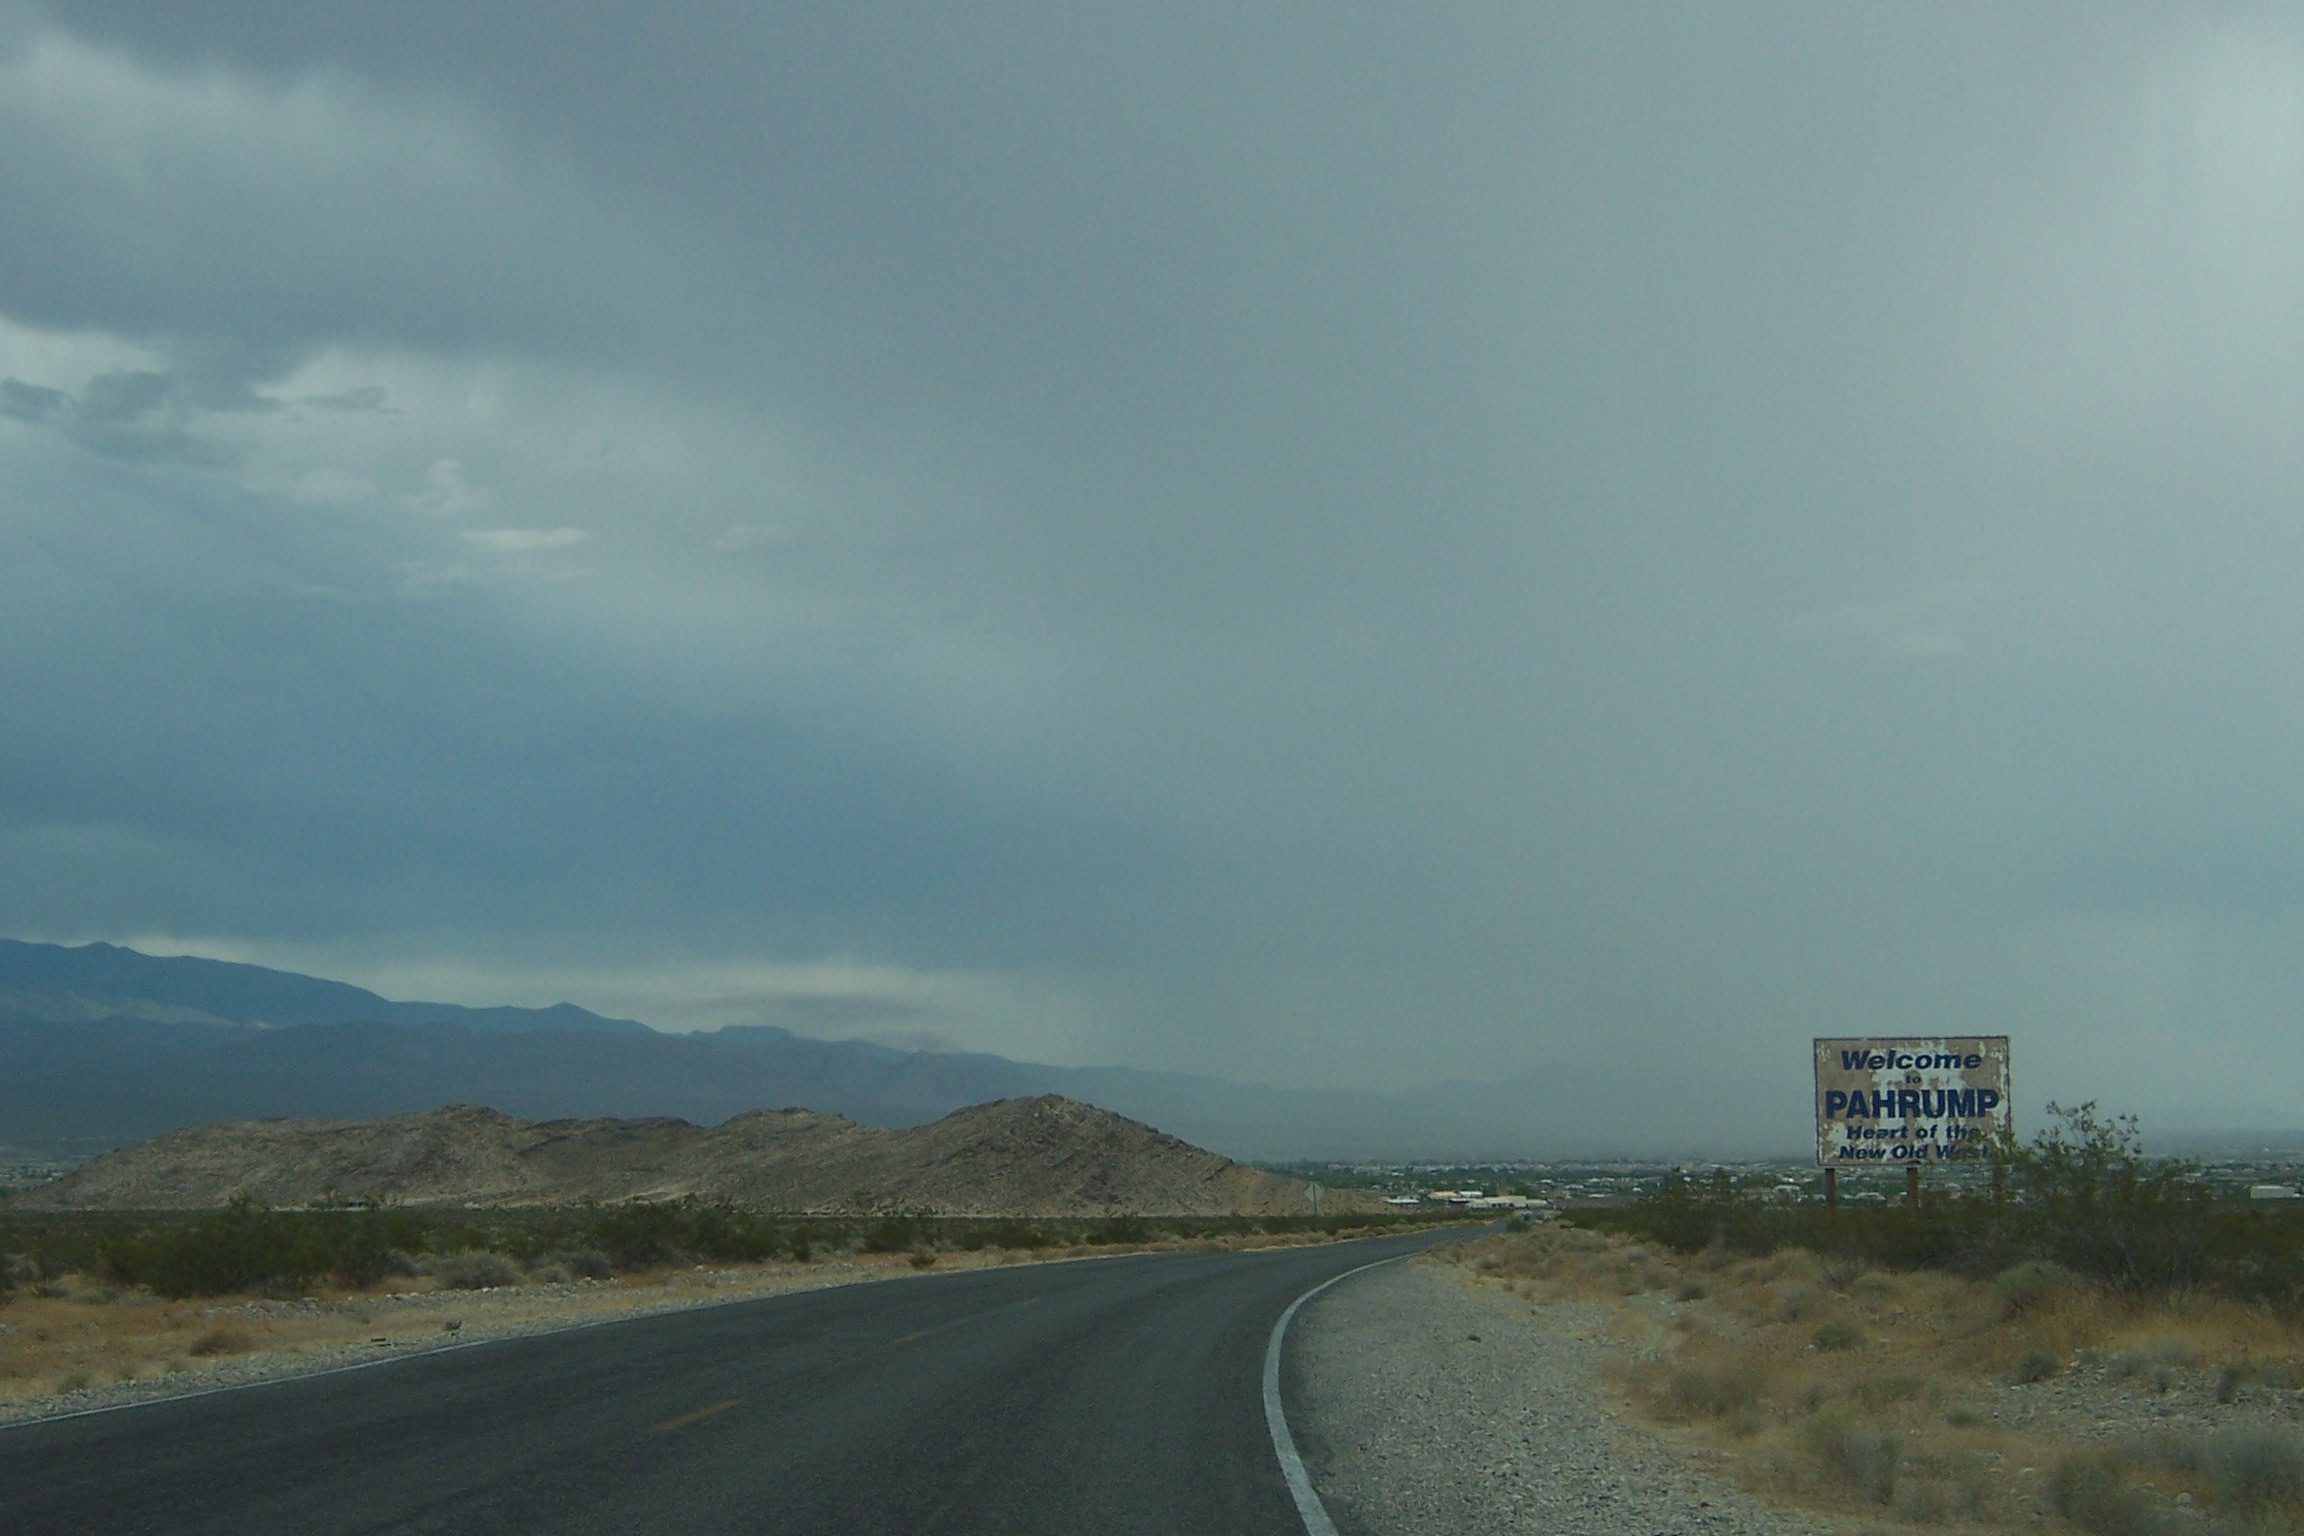 Pahrump (Nevada)